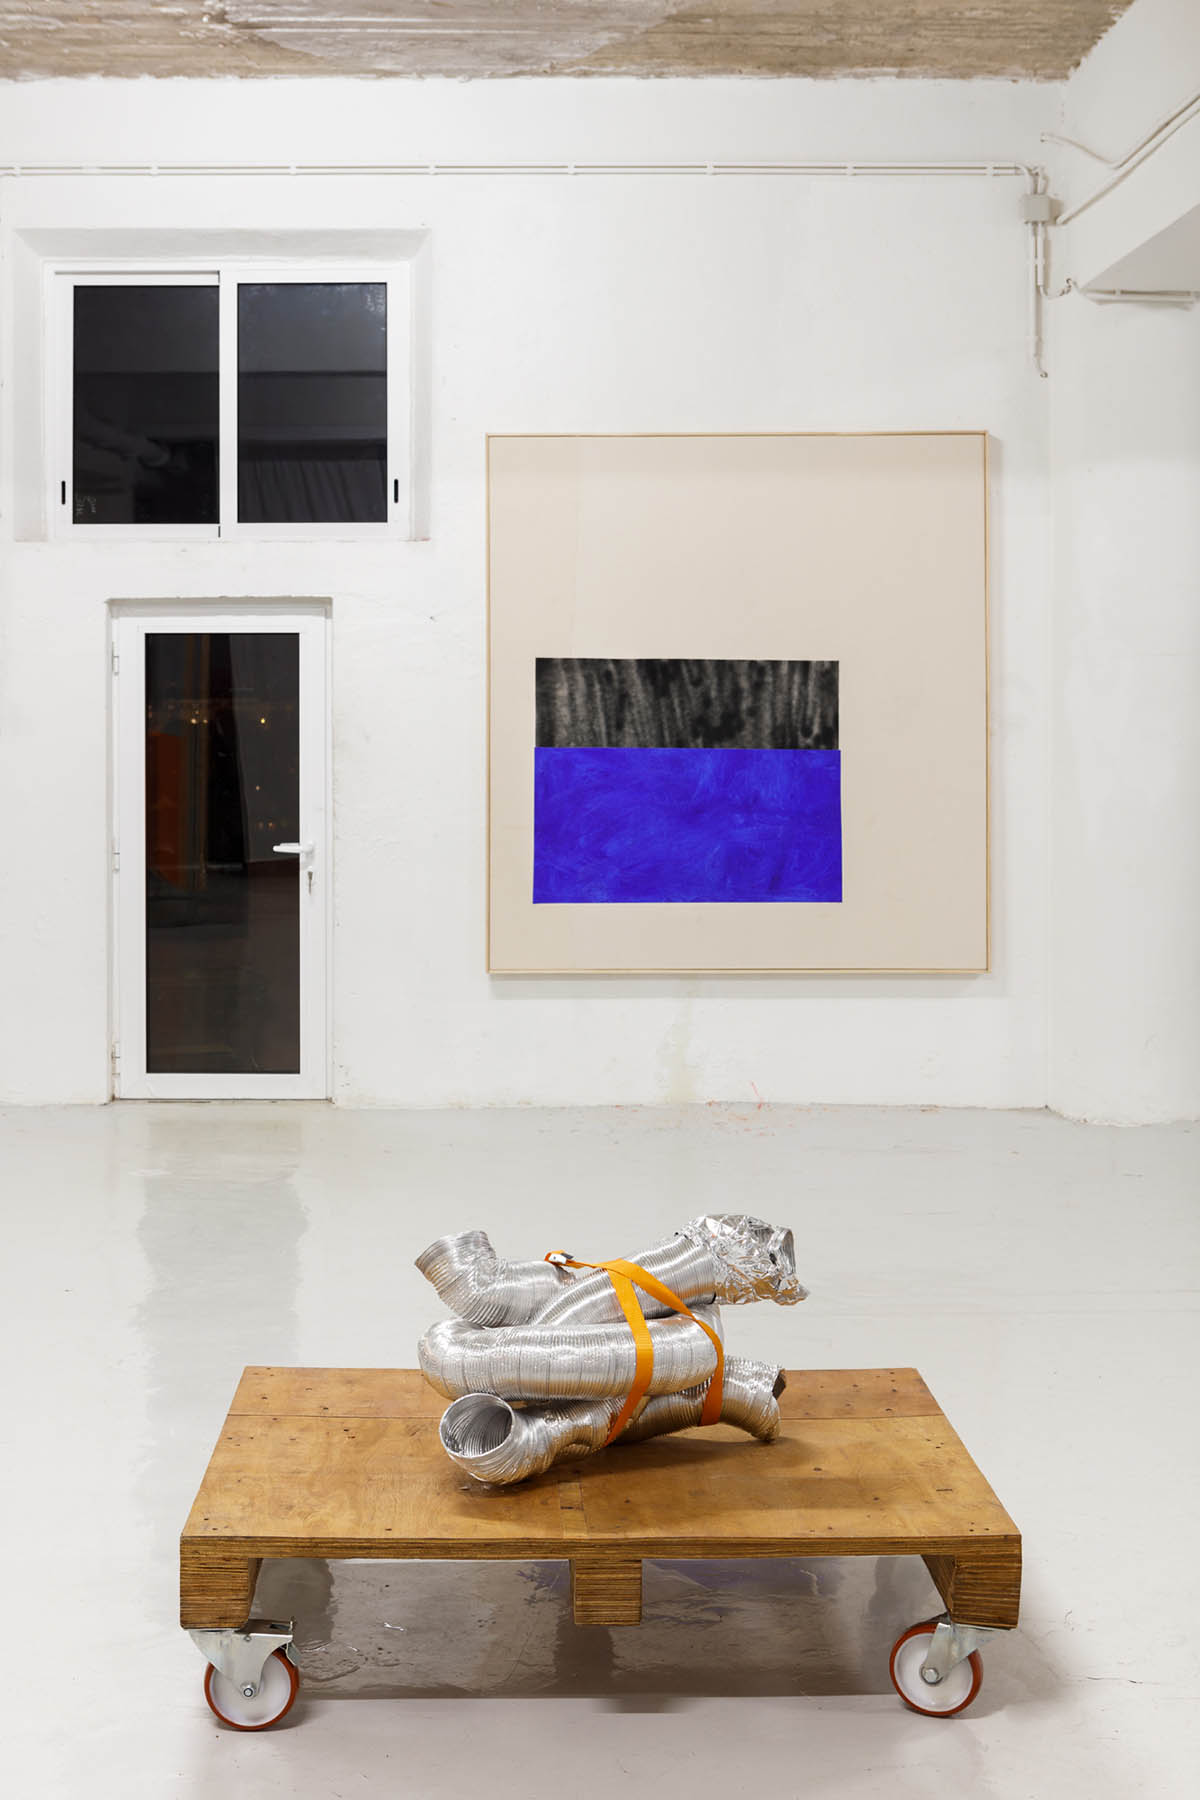 Careful, The Floor is Wet, duo show with Monique Barnett, curated by Aude Vignac, Mono – Lisbon 2021. Photo: Photodocumenta